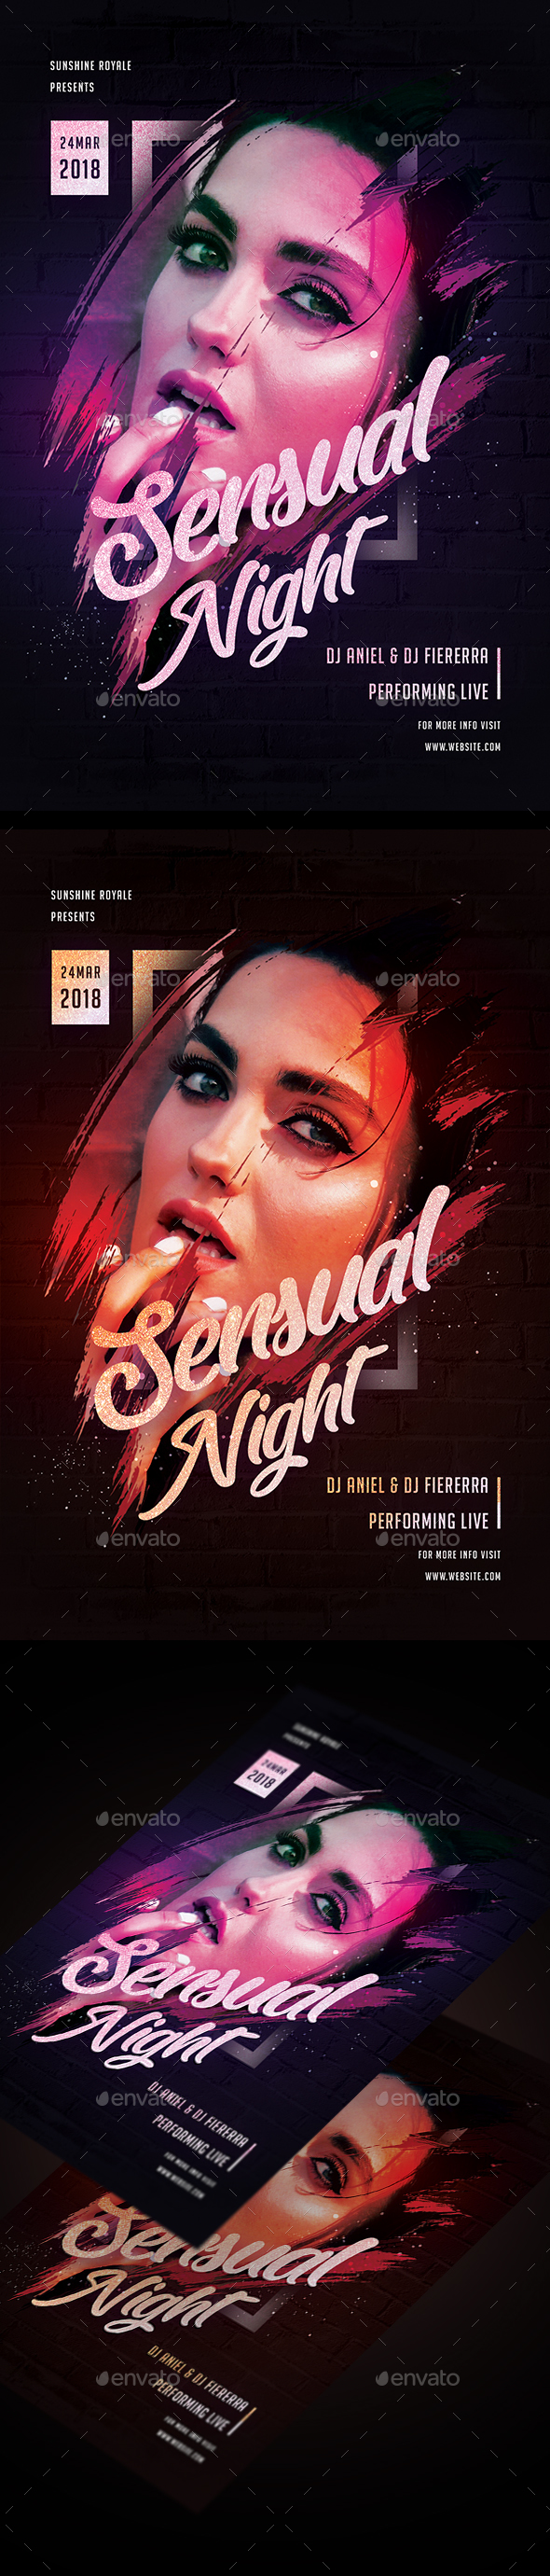 Sensual Night Party Flyer - Clubs & Parties Events